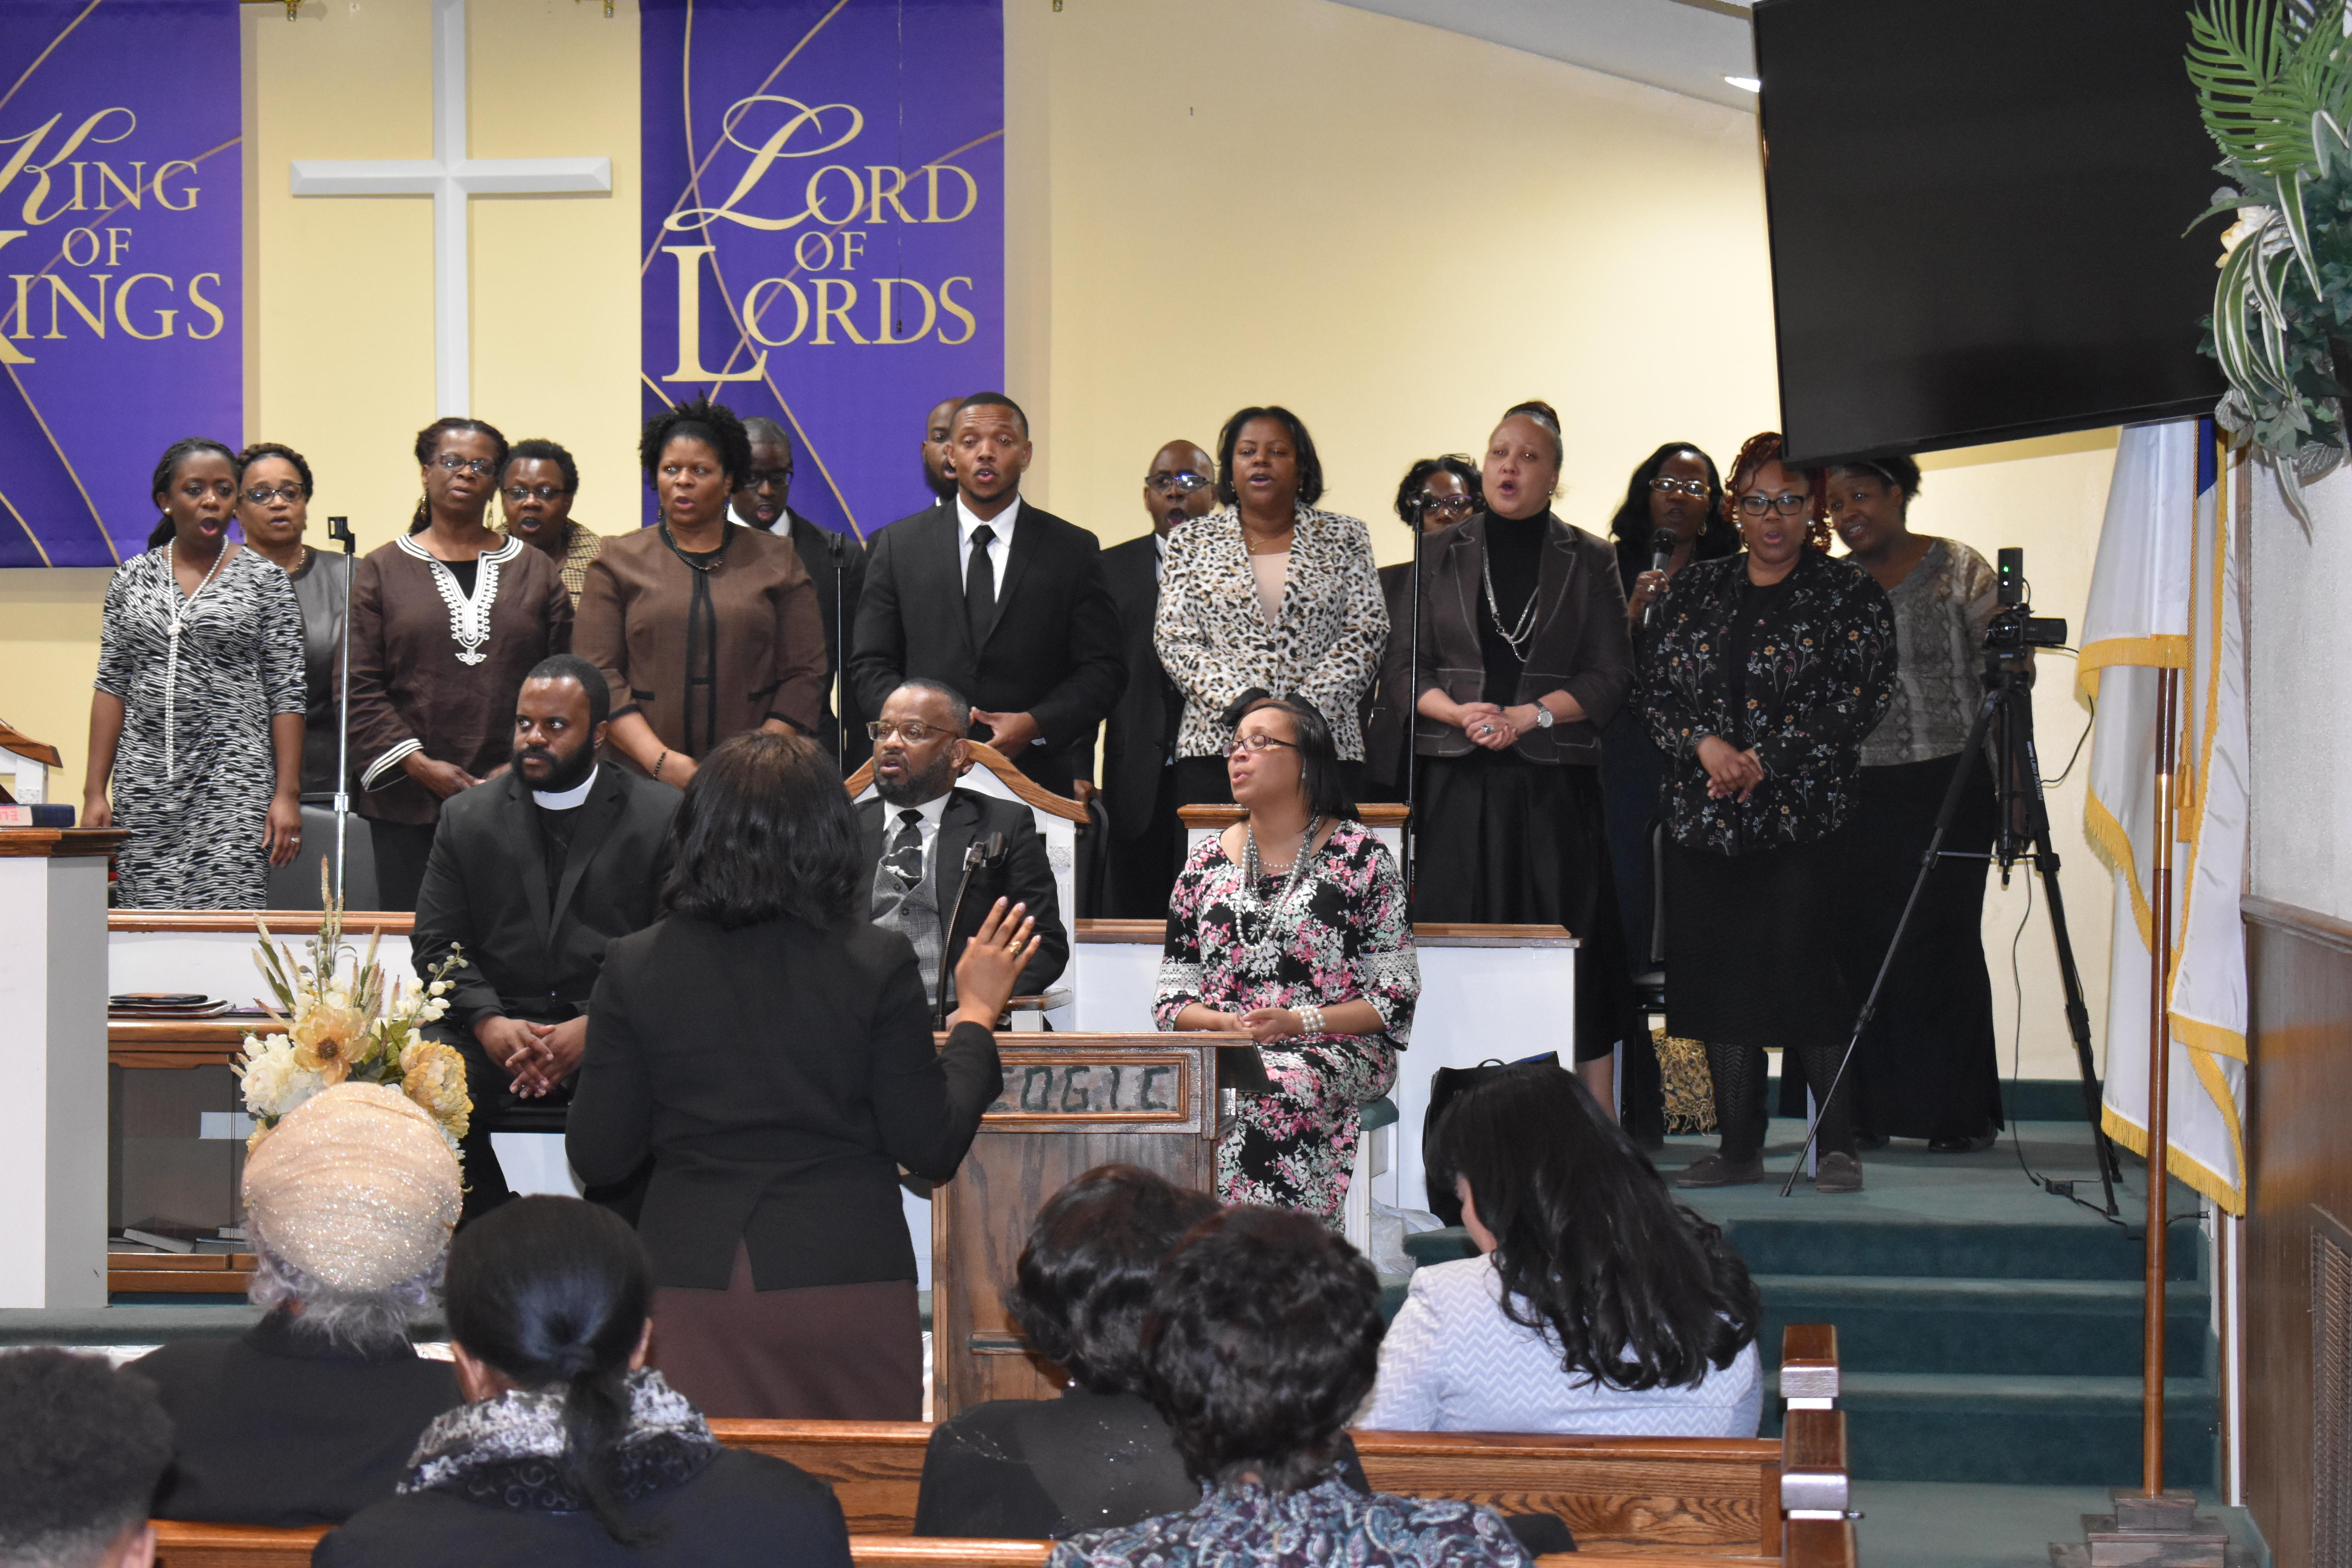 PASTOR PRUITTE: HOLINESS TABERNACLE COGIC